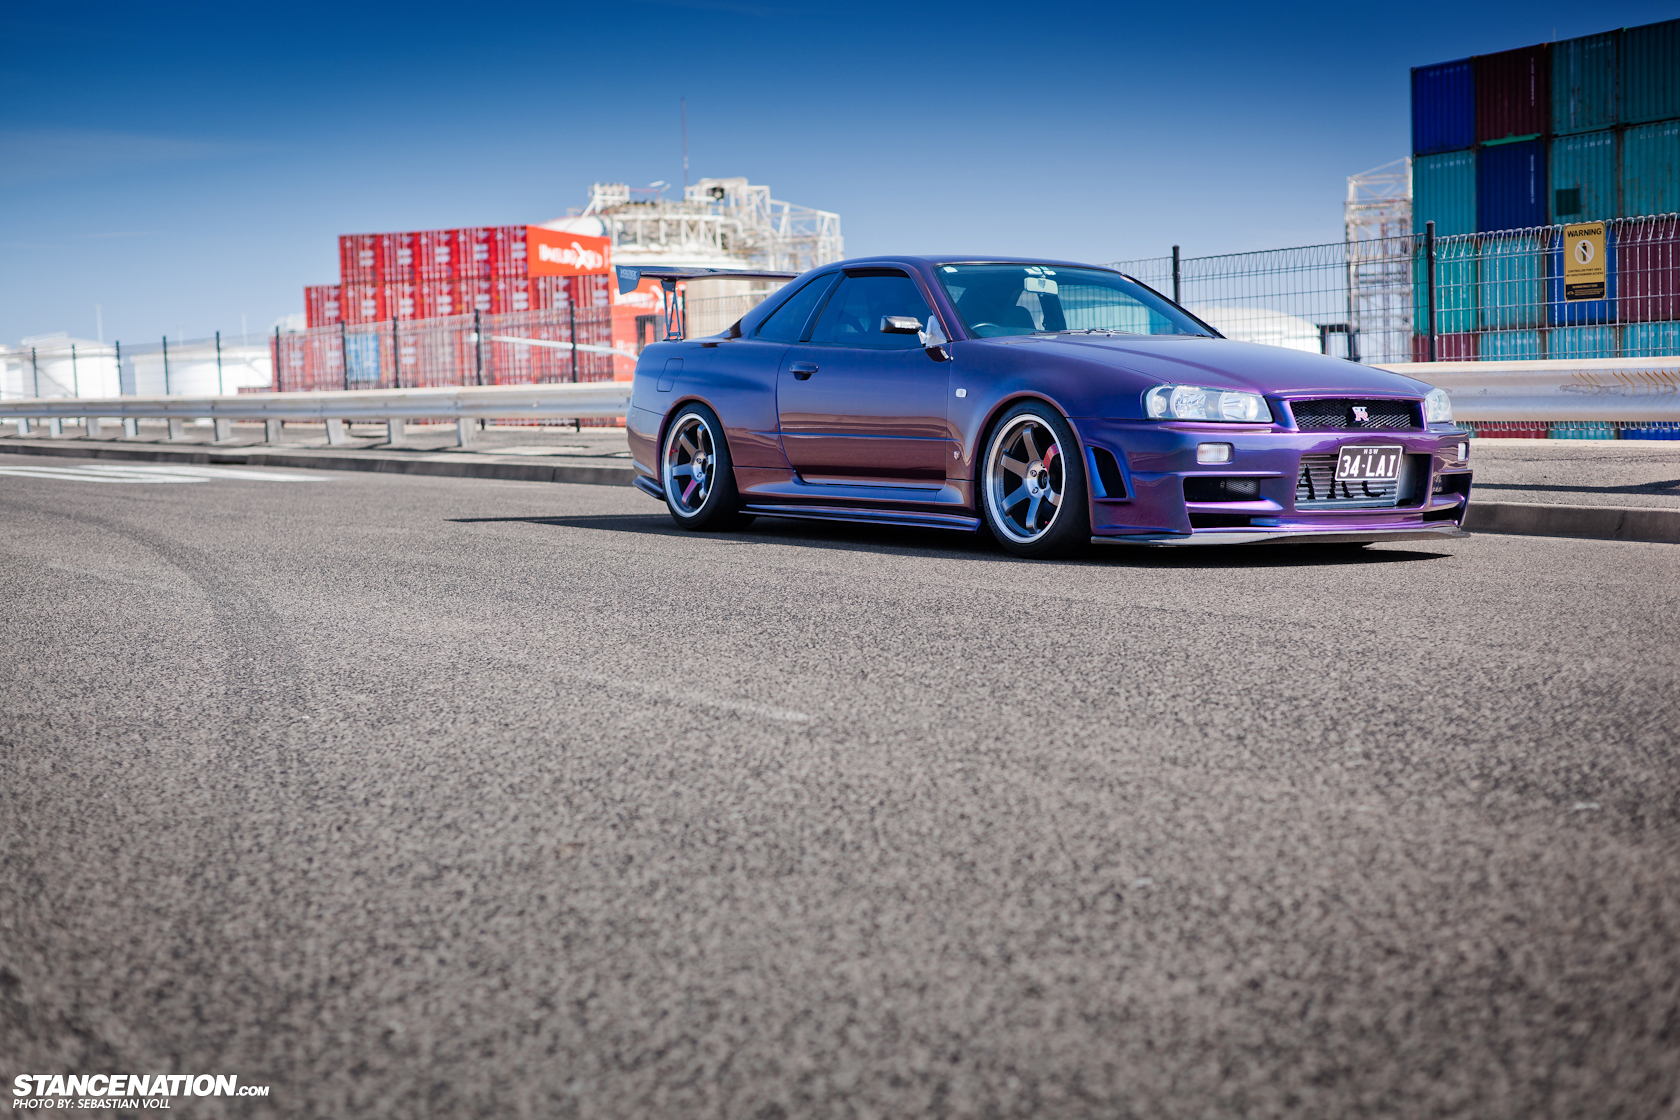 is a 1999 nissan skyline r34 gtr legal in usa autos post. Black Bedroom Furniture Sets. Home Design Ideas